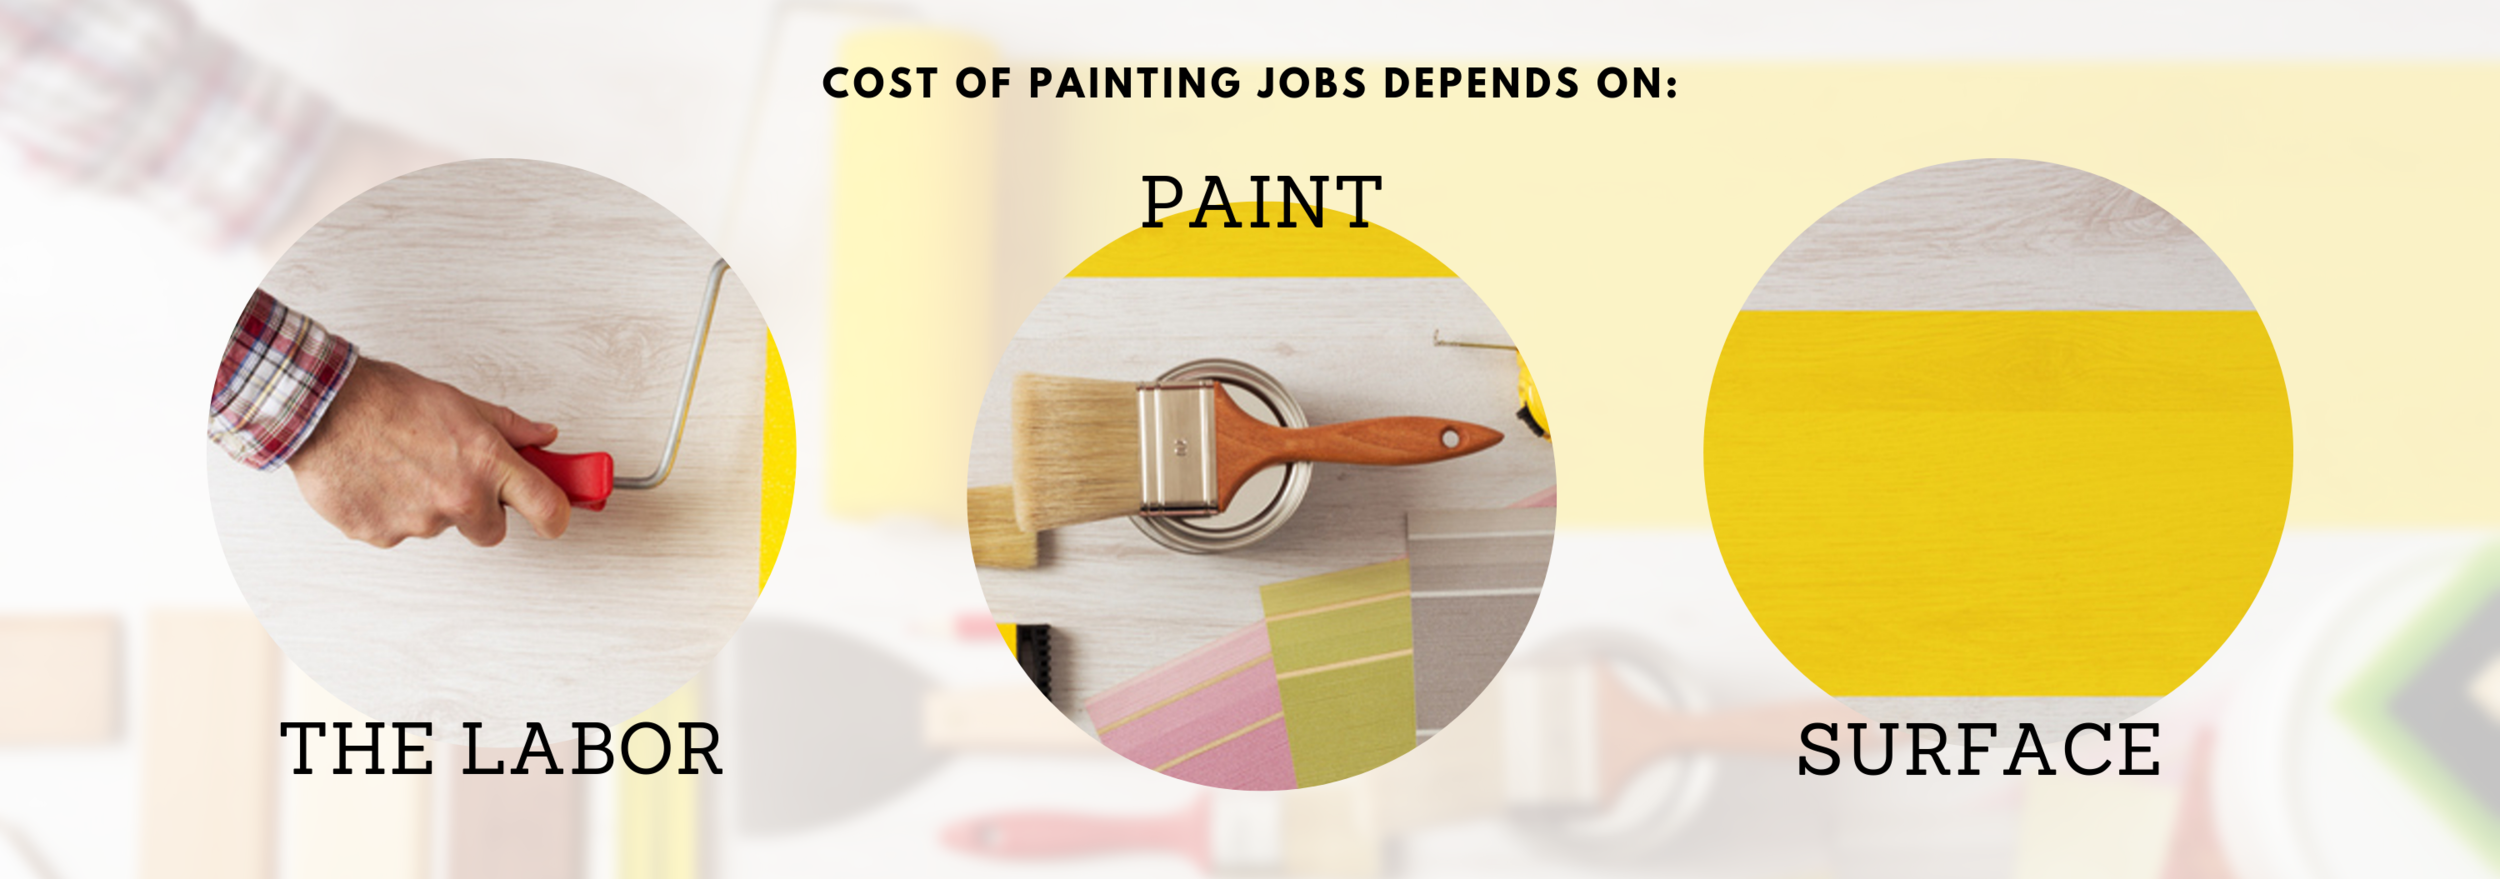 Some painting contractors also add building fees, sales taxes for materials and supplies, and any general contractor fees to your final invoice. Always look and ask for these charges as it will increase your invoice up to $899 higher.